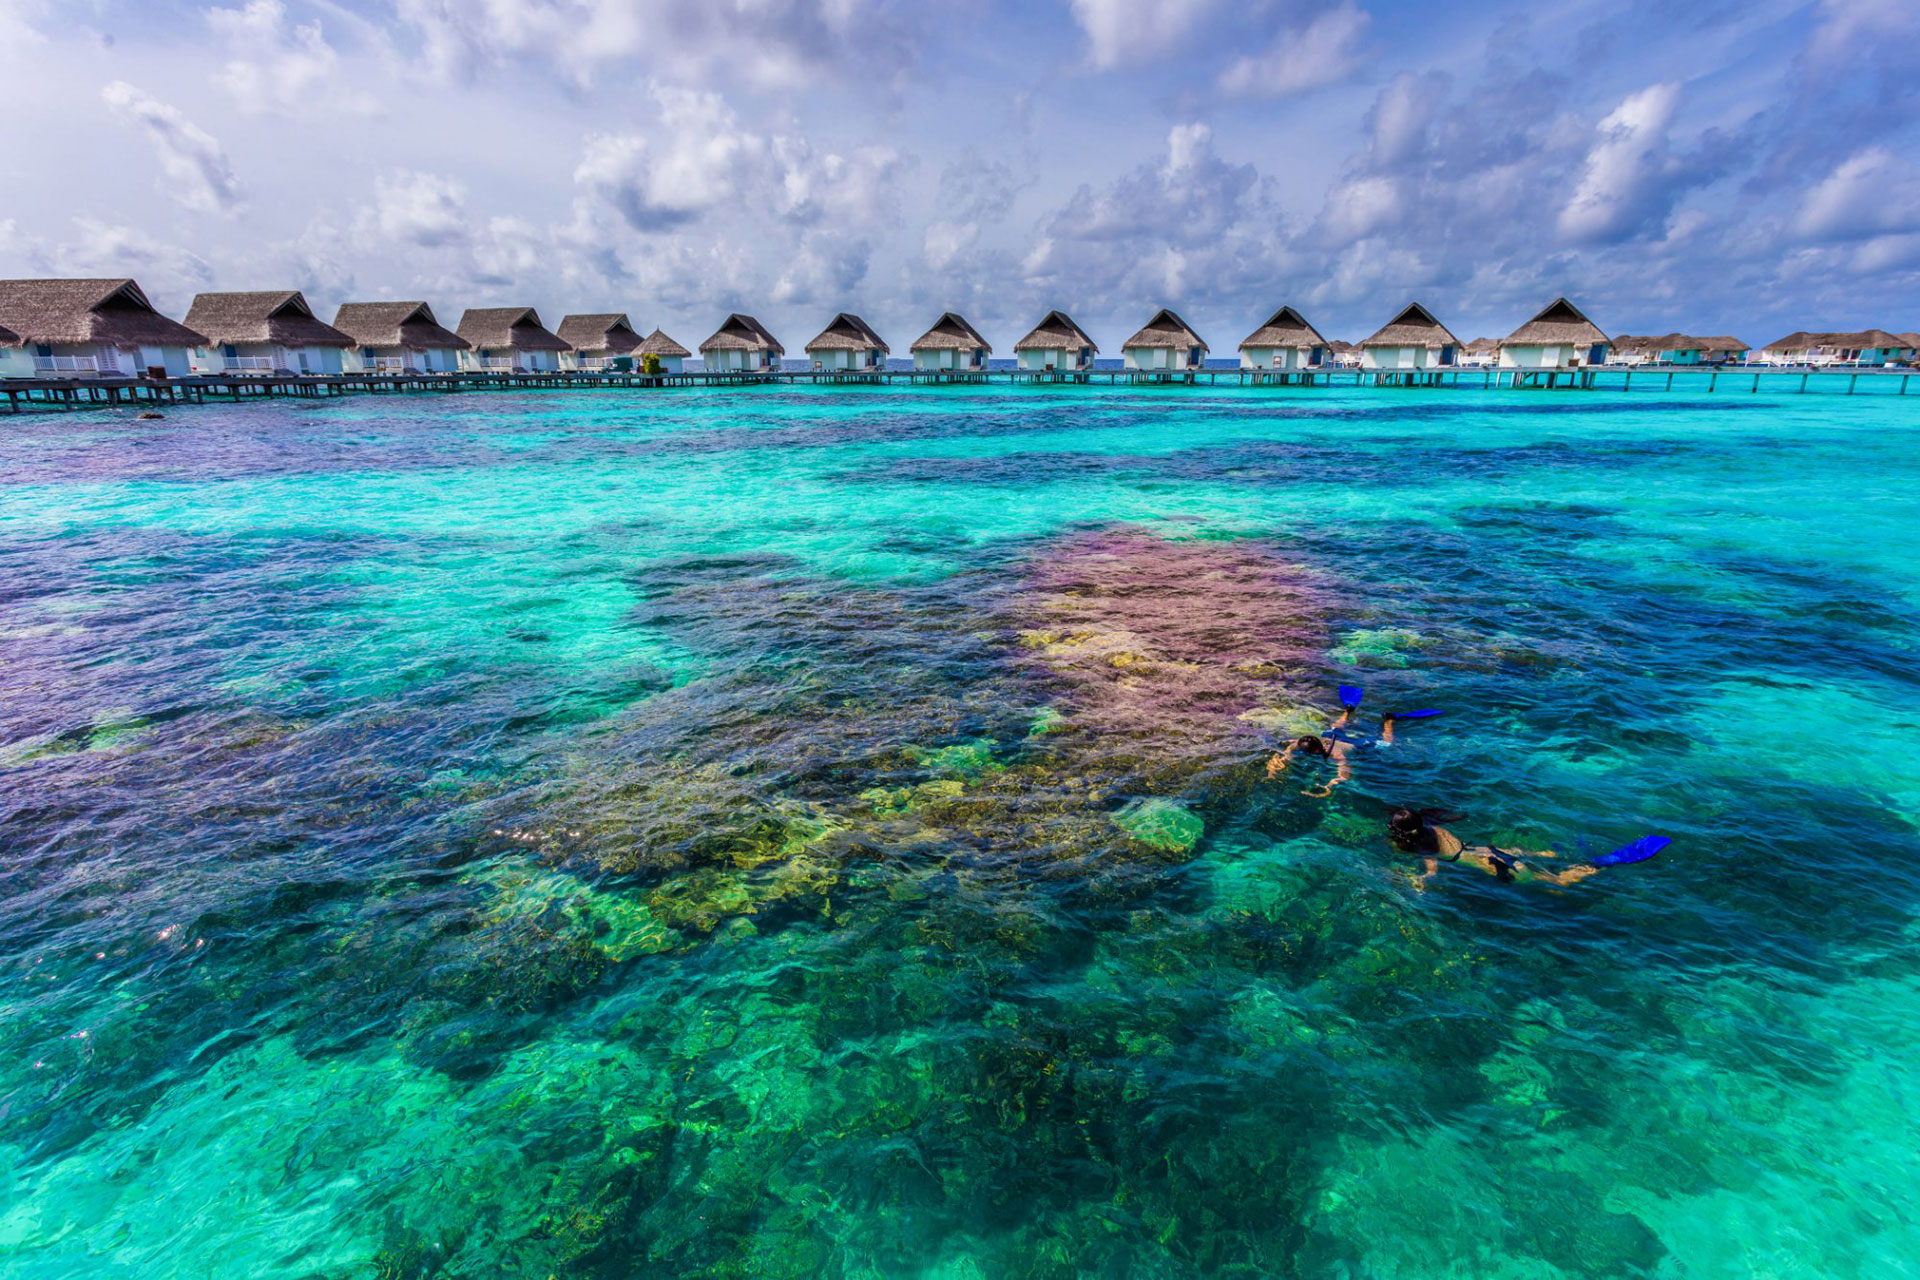 Centara Grand Island Resort & Spa in the Maldives